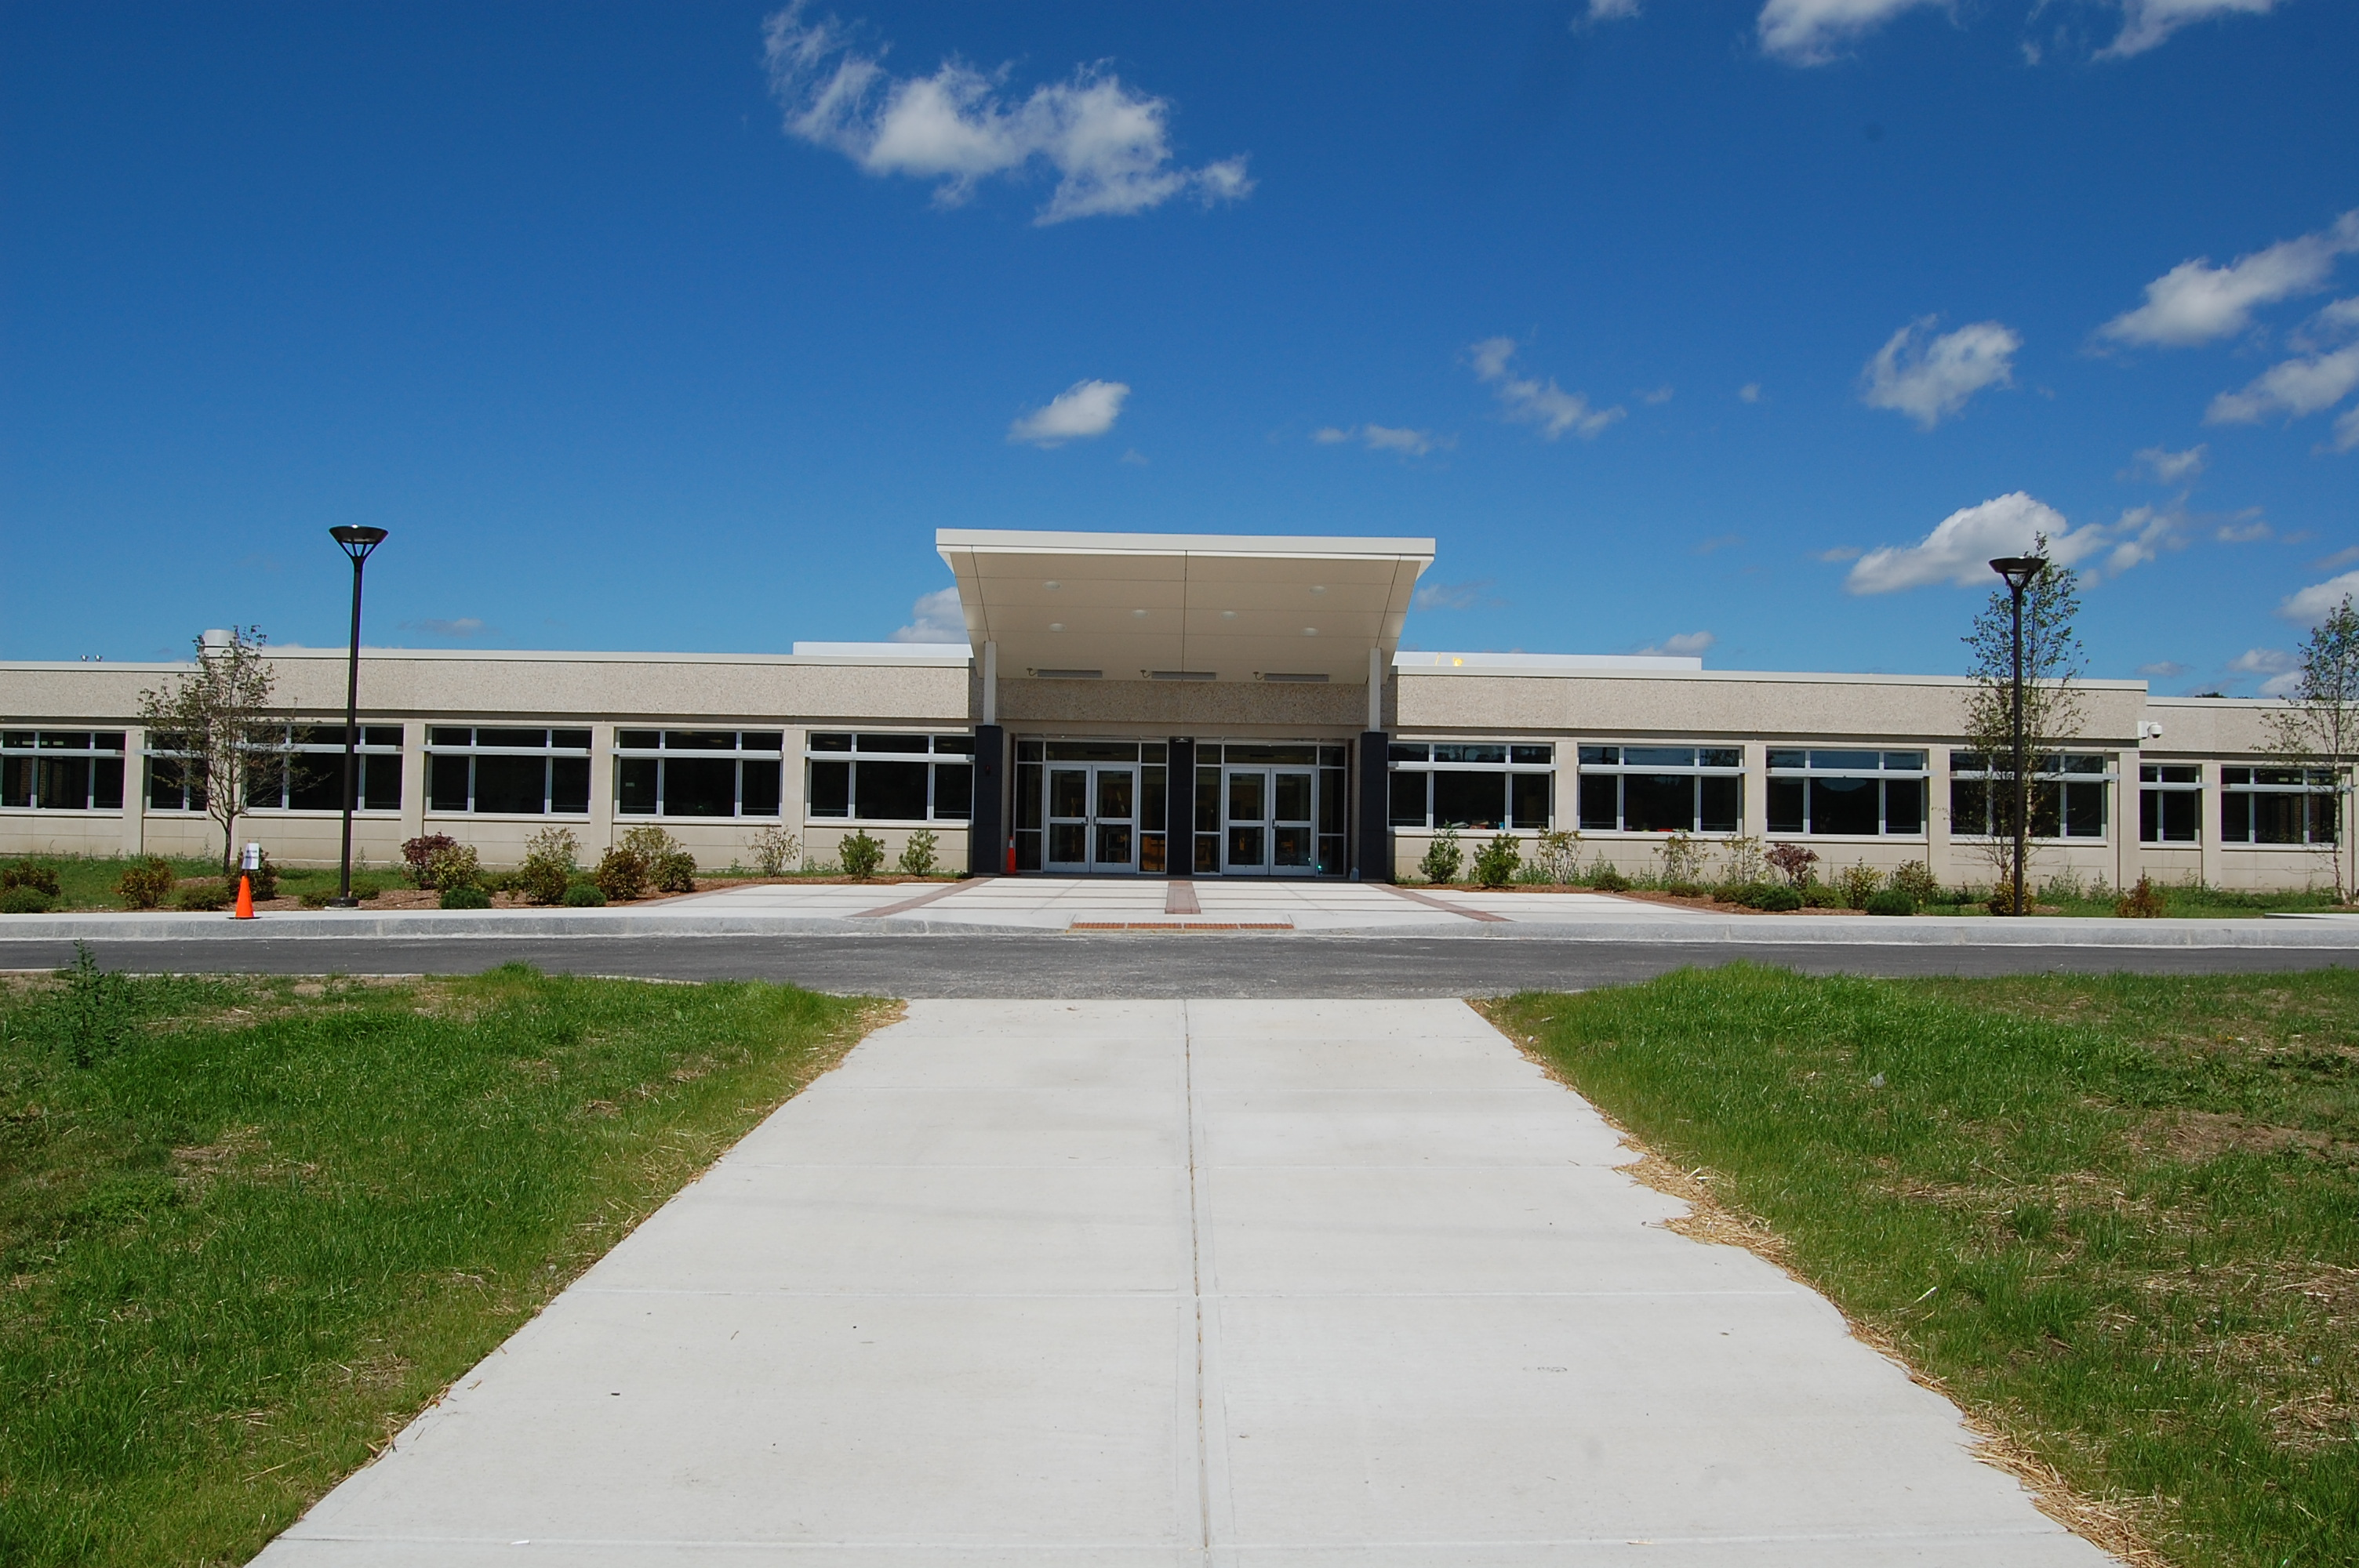 Hoosac Valley Middle High School